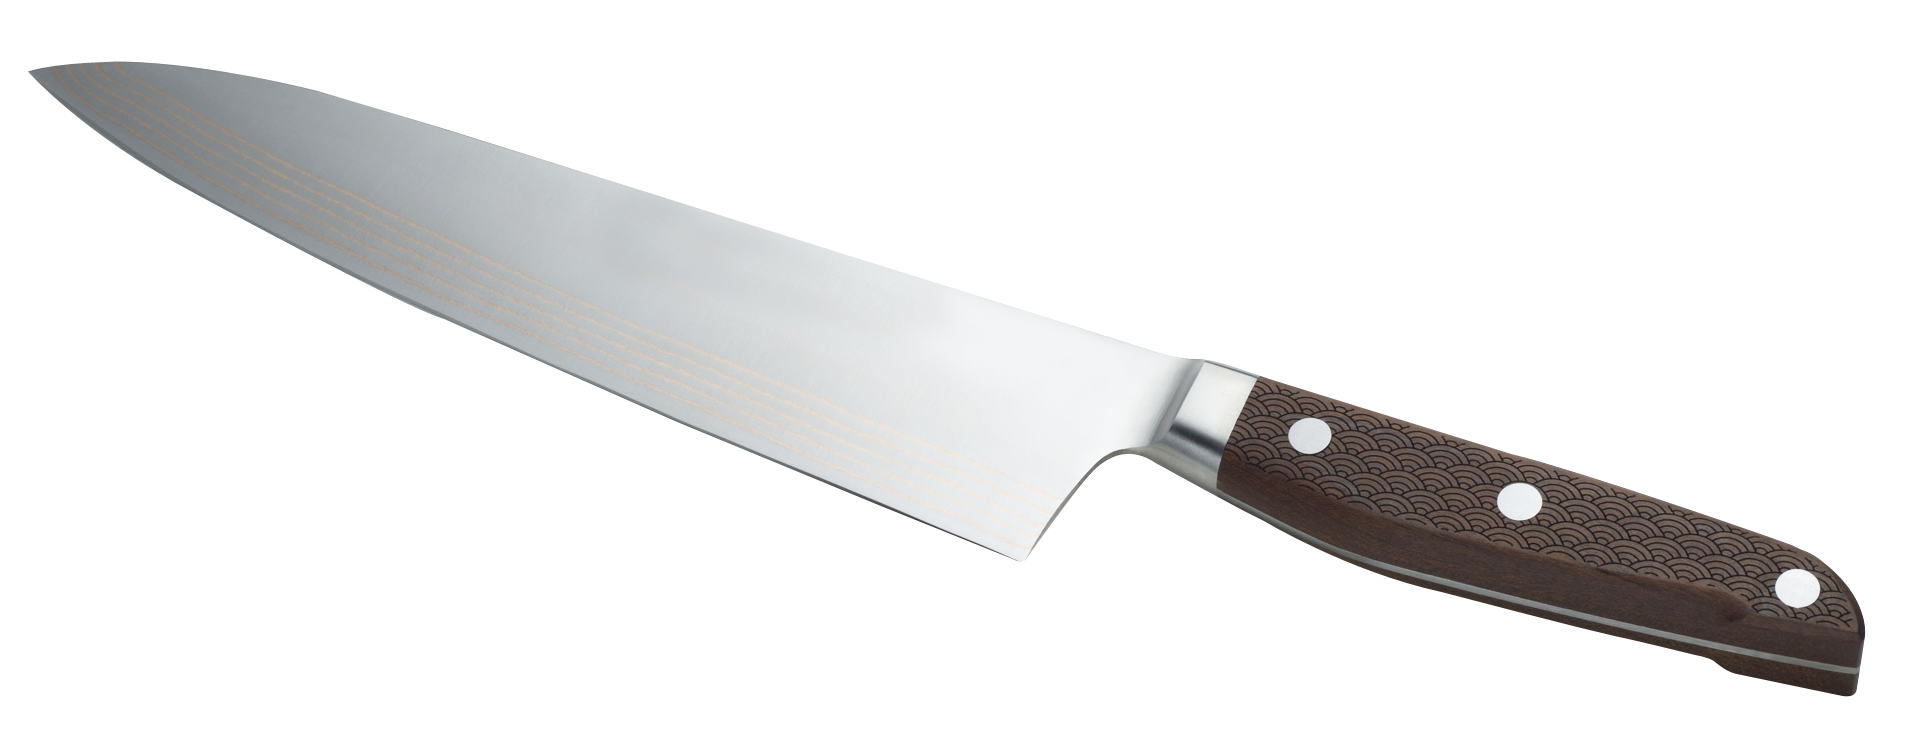 Knife PNG